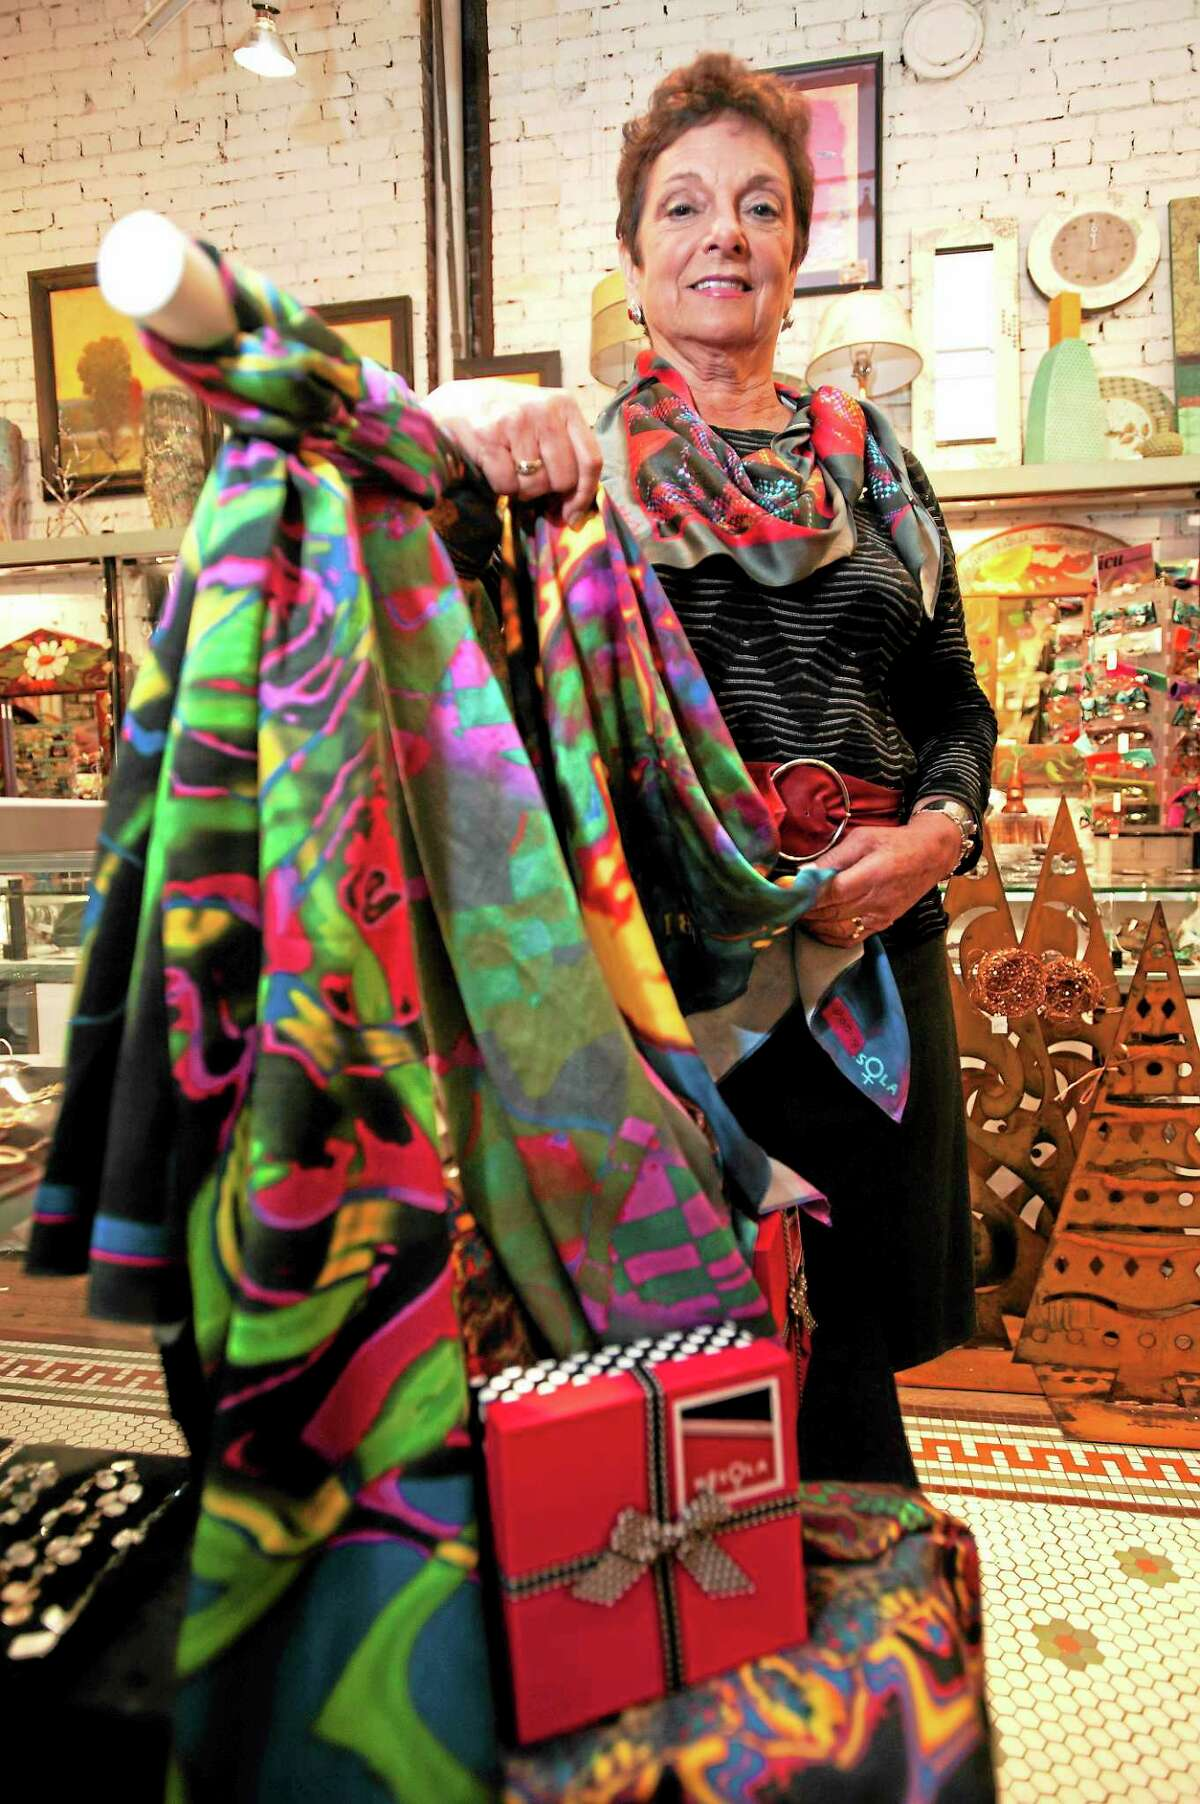 Artist Lois Goglia of Cheshire says she finds inspiration for her work in the vibrant people and culture of San Miguel de Allende, Mexico.